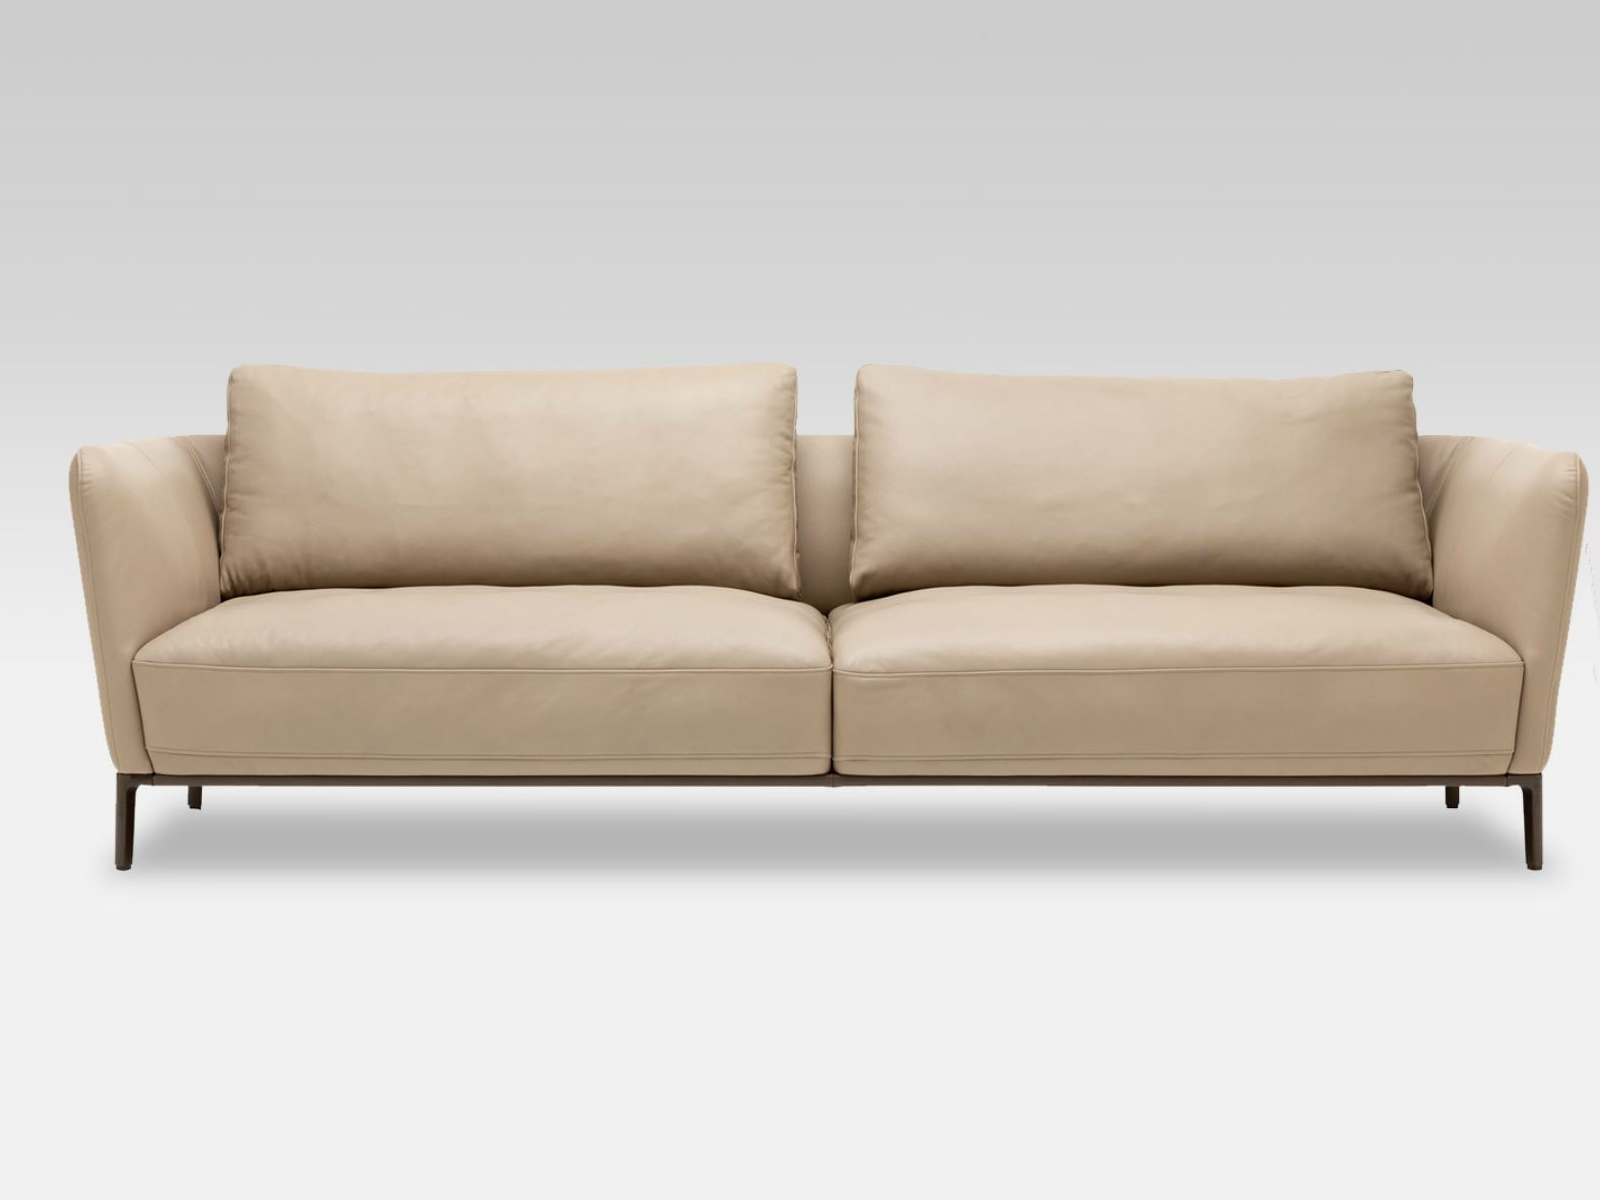 Rolf Benz 3300 Sofa Couch Rolf Benz Sofa By Rolf Benz 50 Rolf Benz Sofa